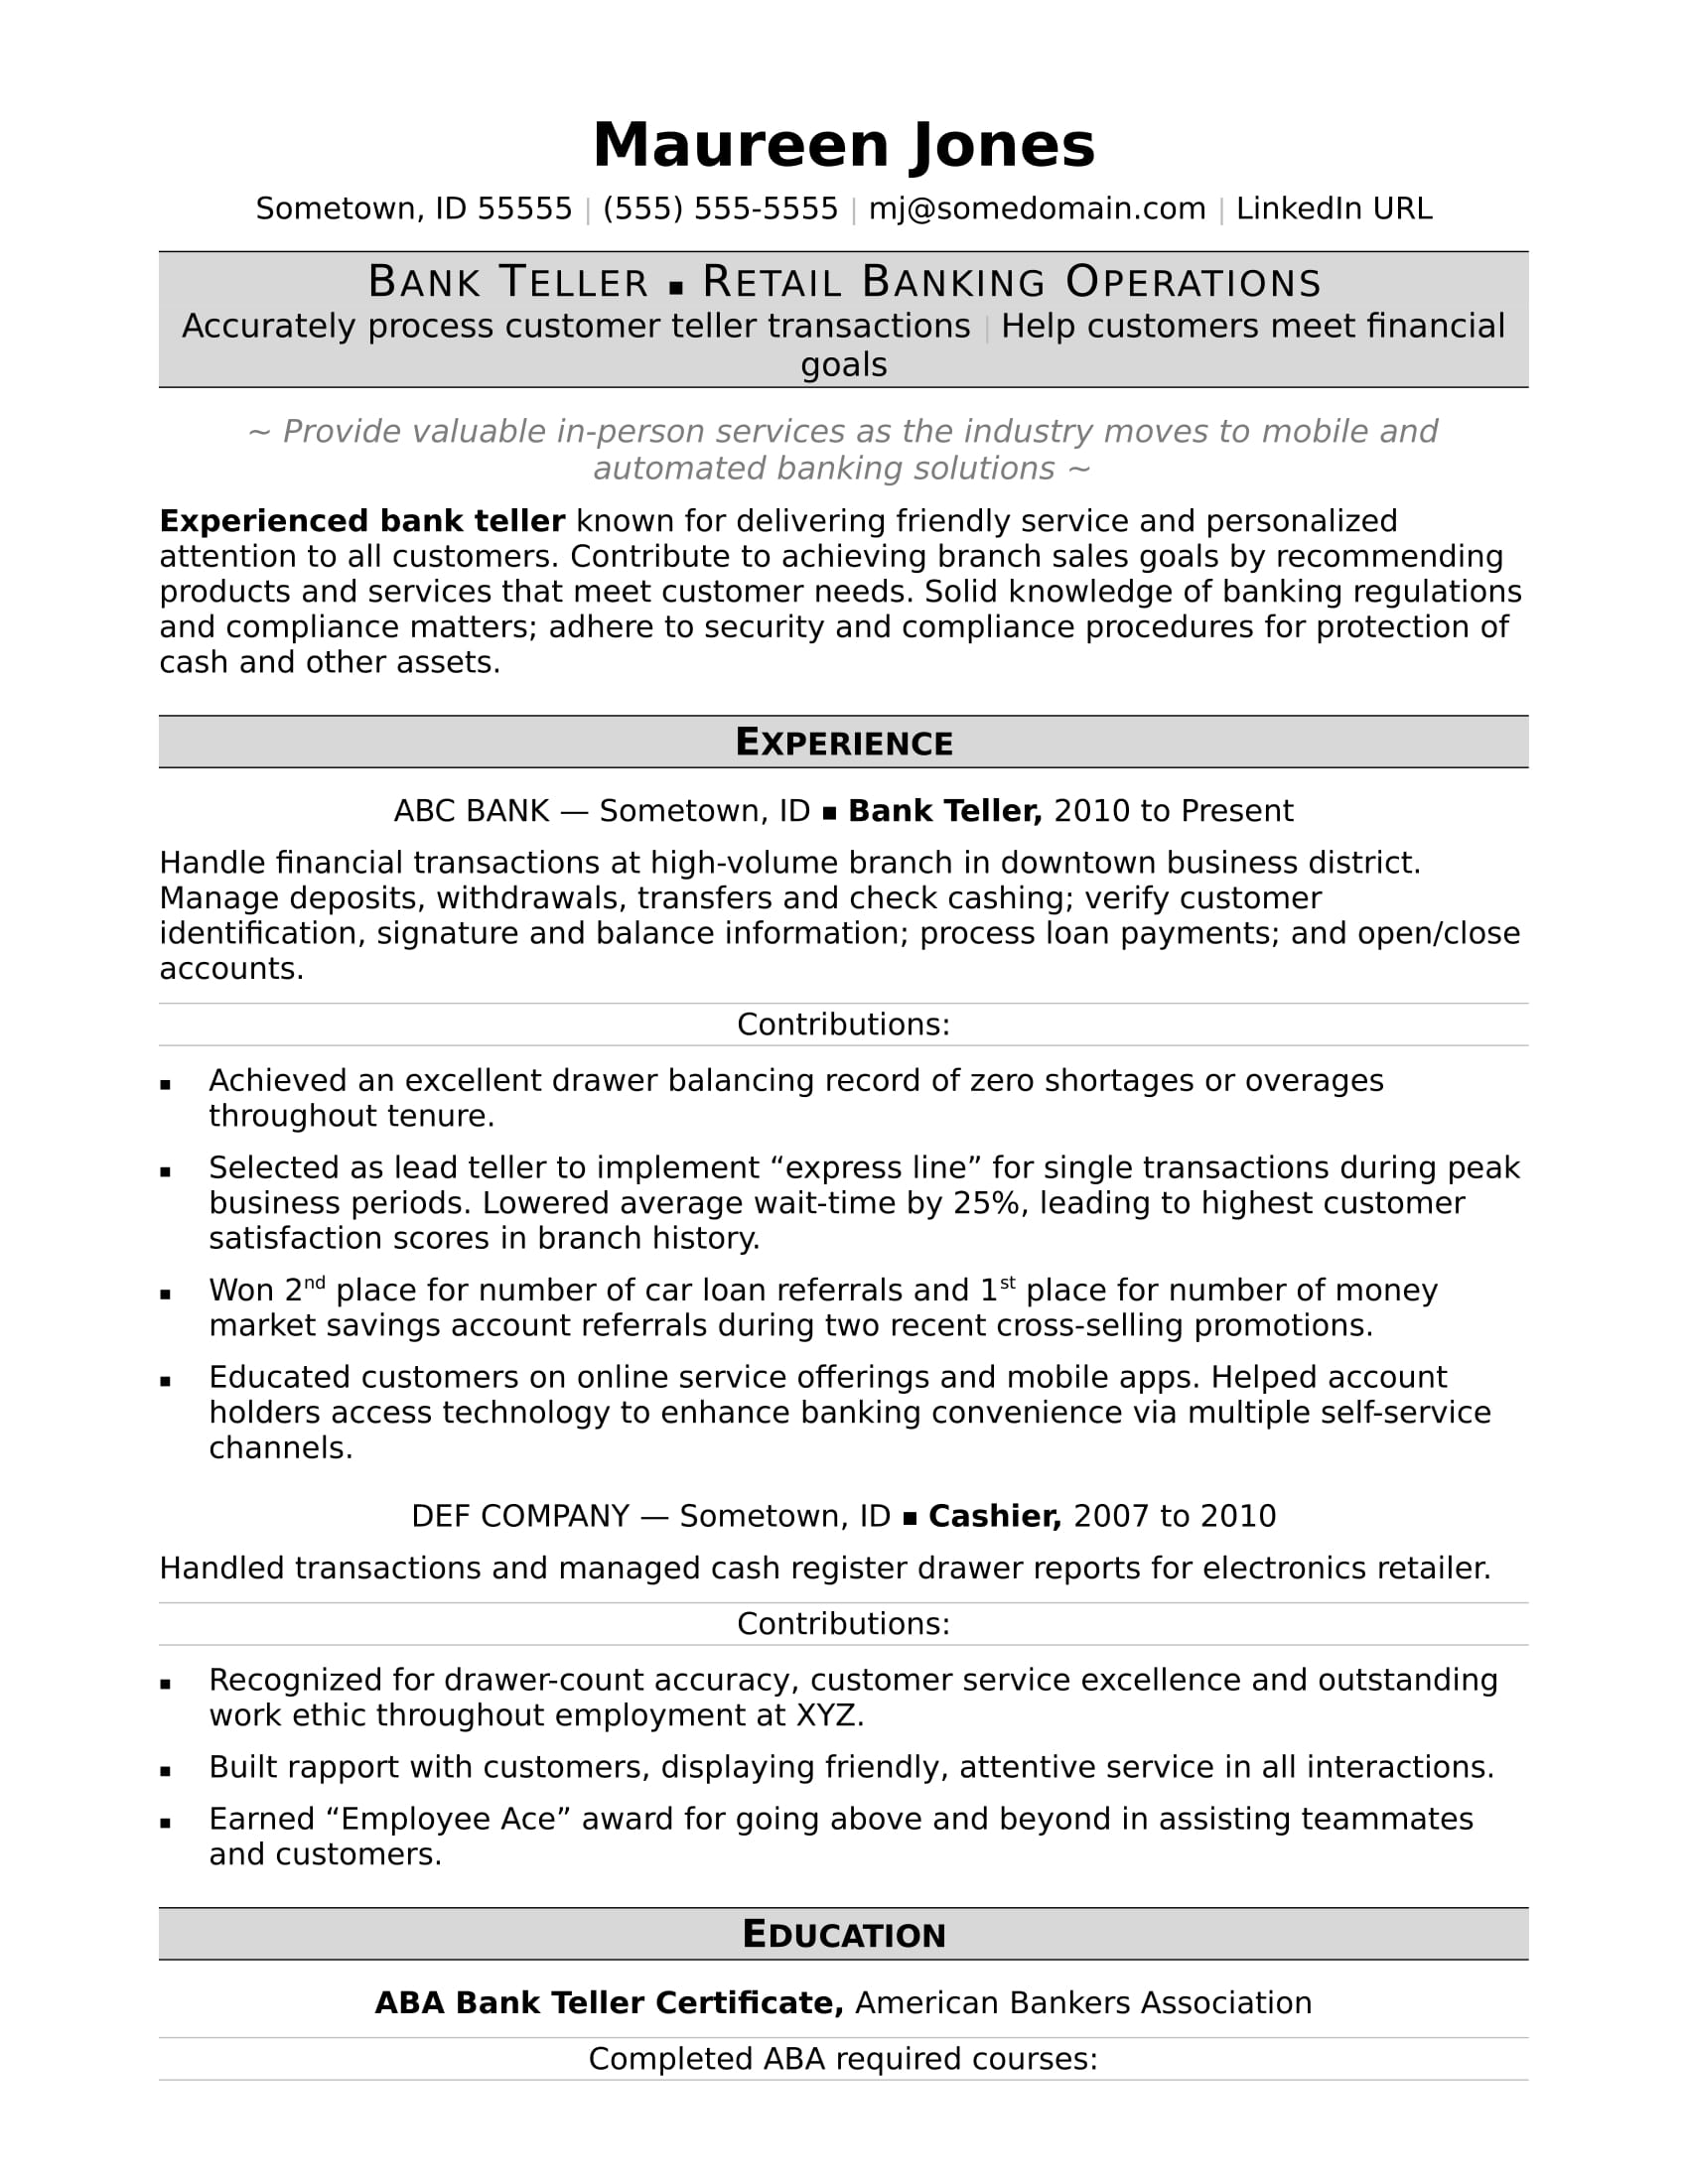 bank resume sample monster description bankteller forklift driver template example Resume Bank Teller Resume Description